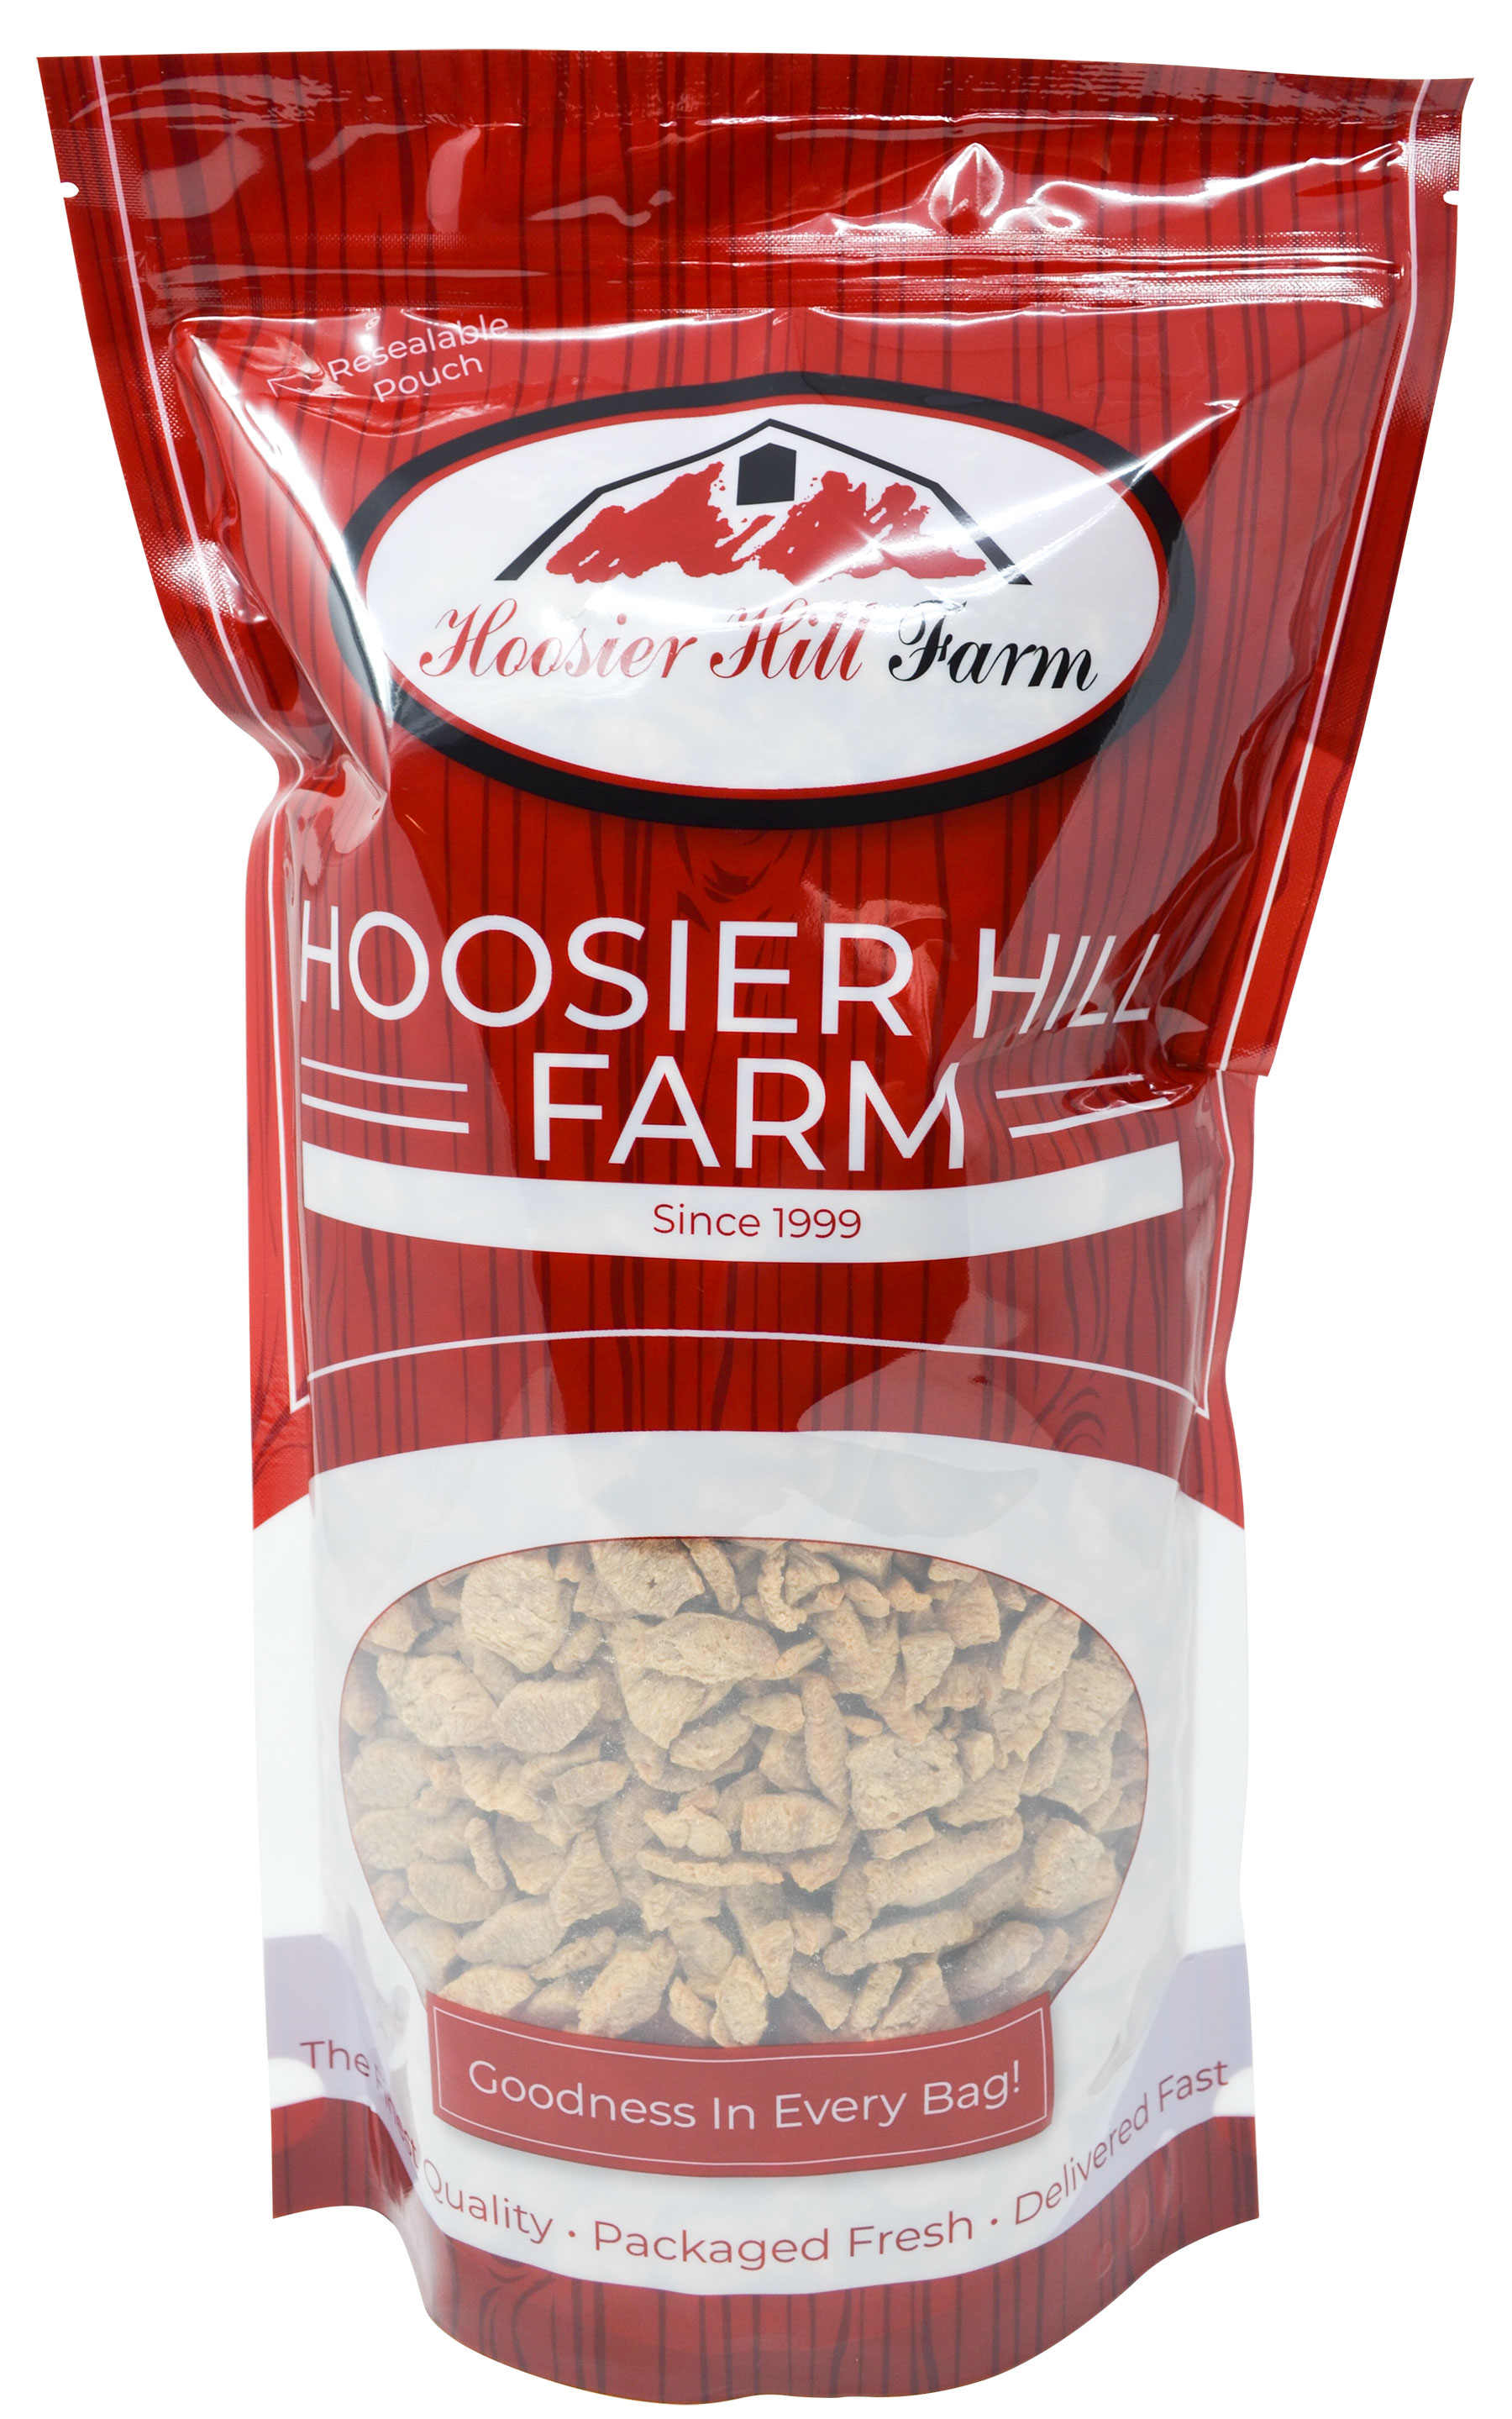 Hoosier Hill Farm Imitation Chicken Strips (Unflavored TVP SOY Protein), 3 lb Bag